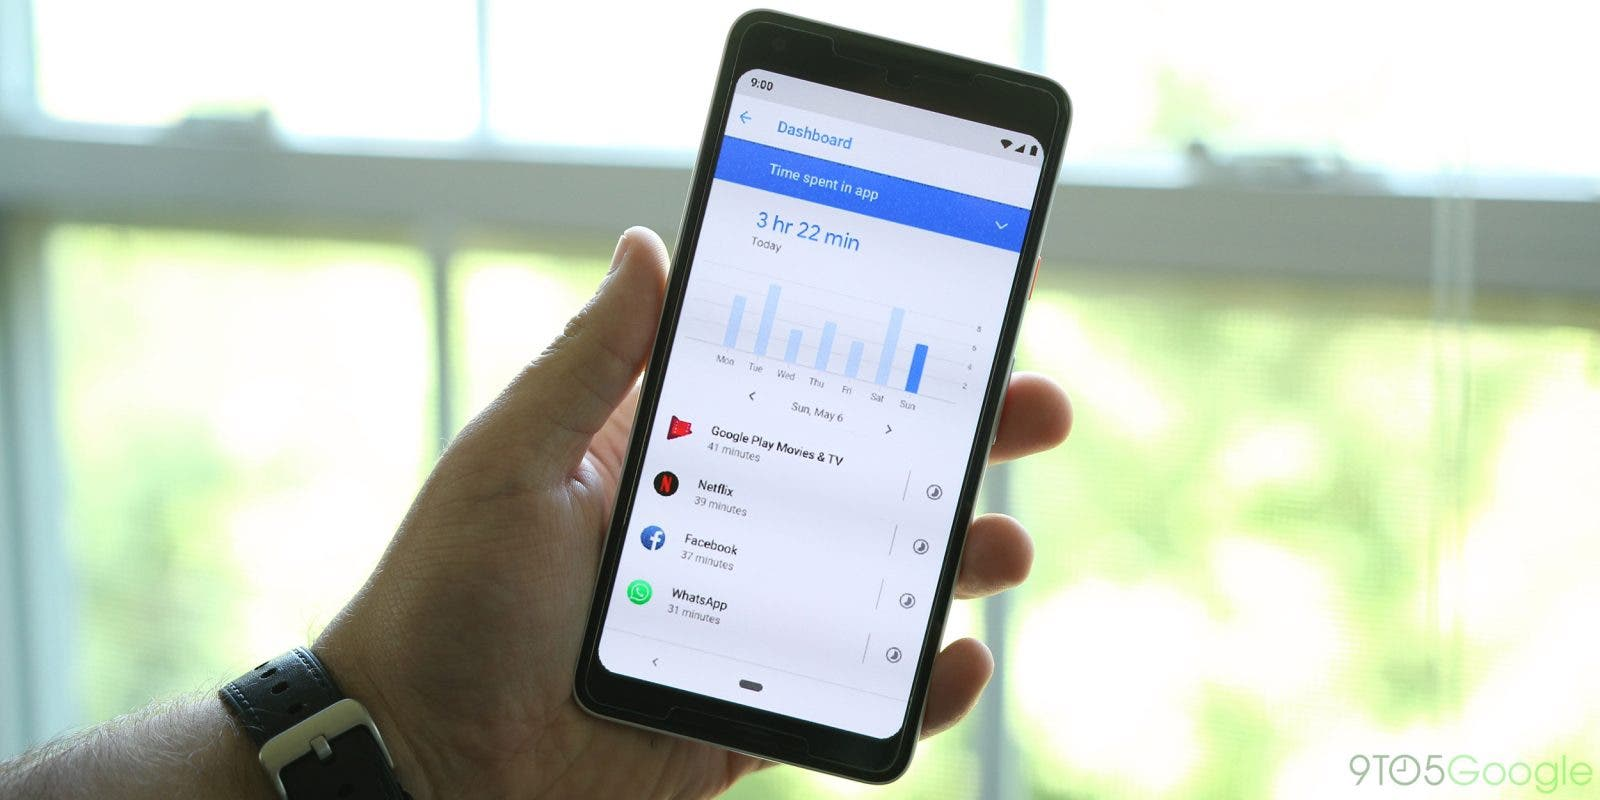 Google adds 3 more Digital Wellbeing experimental apps